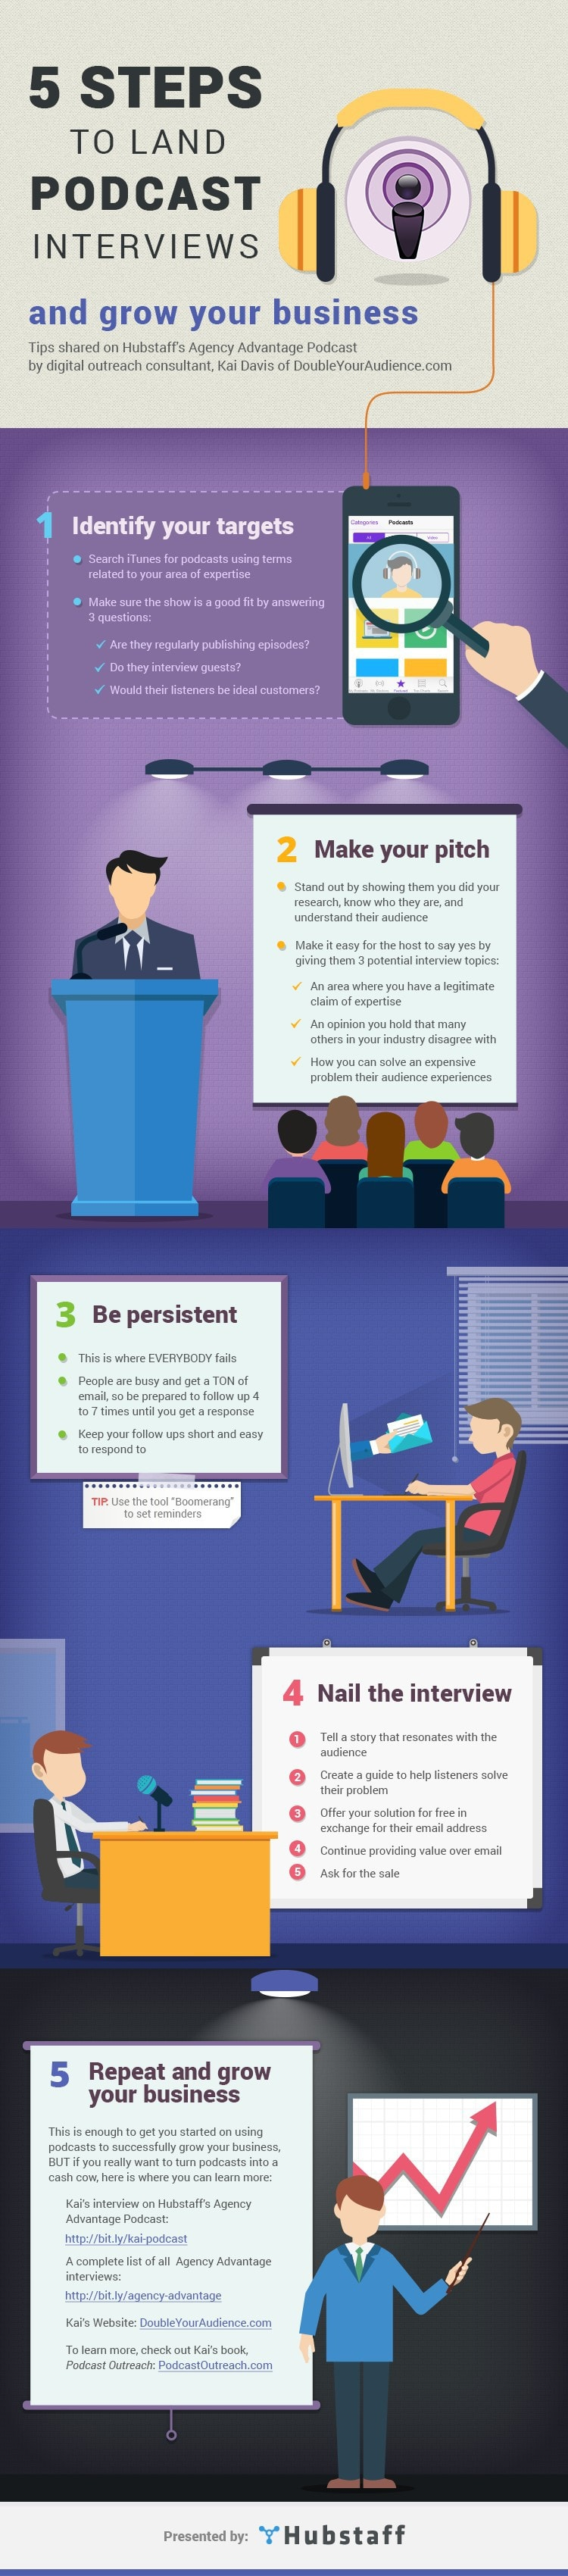 How to Get Featured on a Podcast [Infographic]